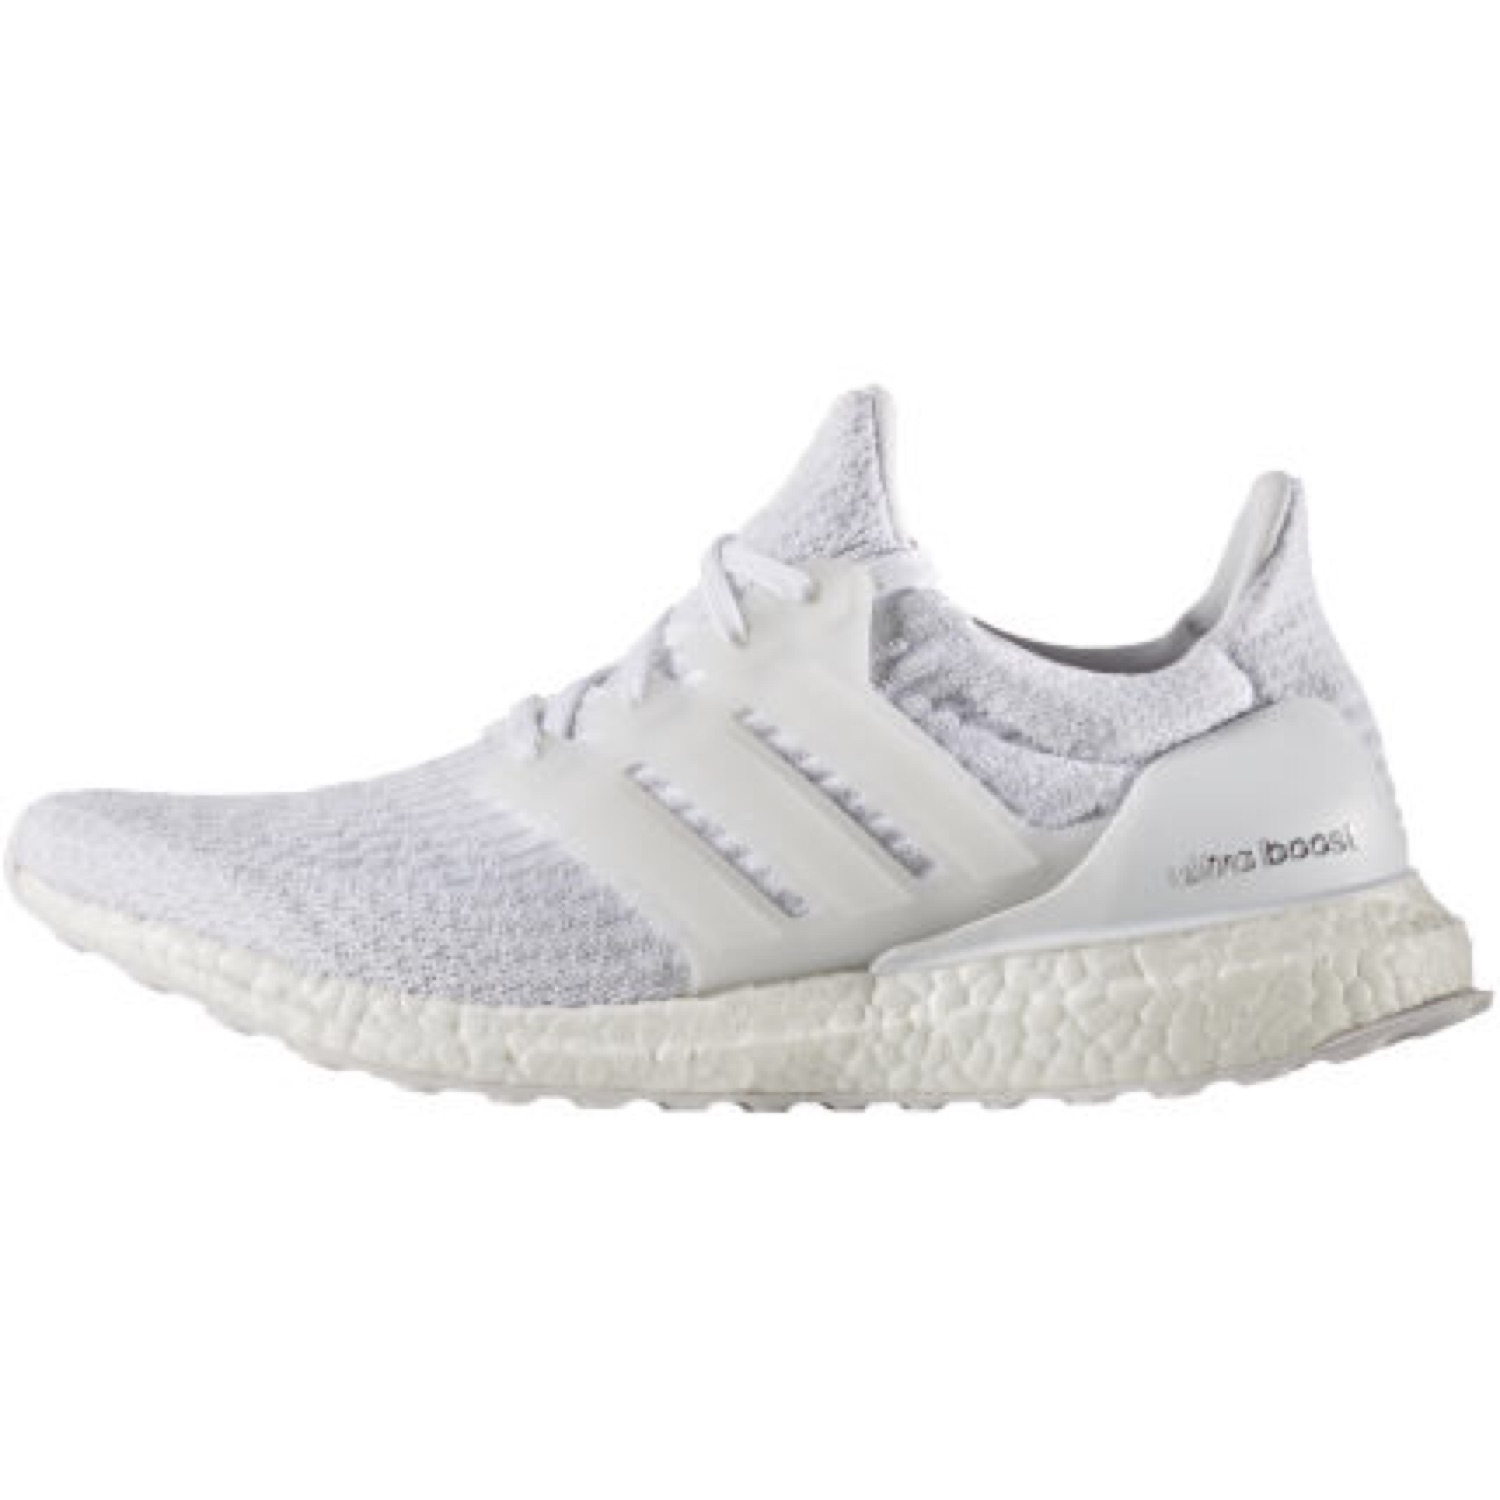 on sale 4ac54 8b1c9 Brand New Adidas Ultra Boost White